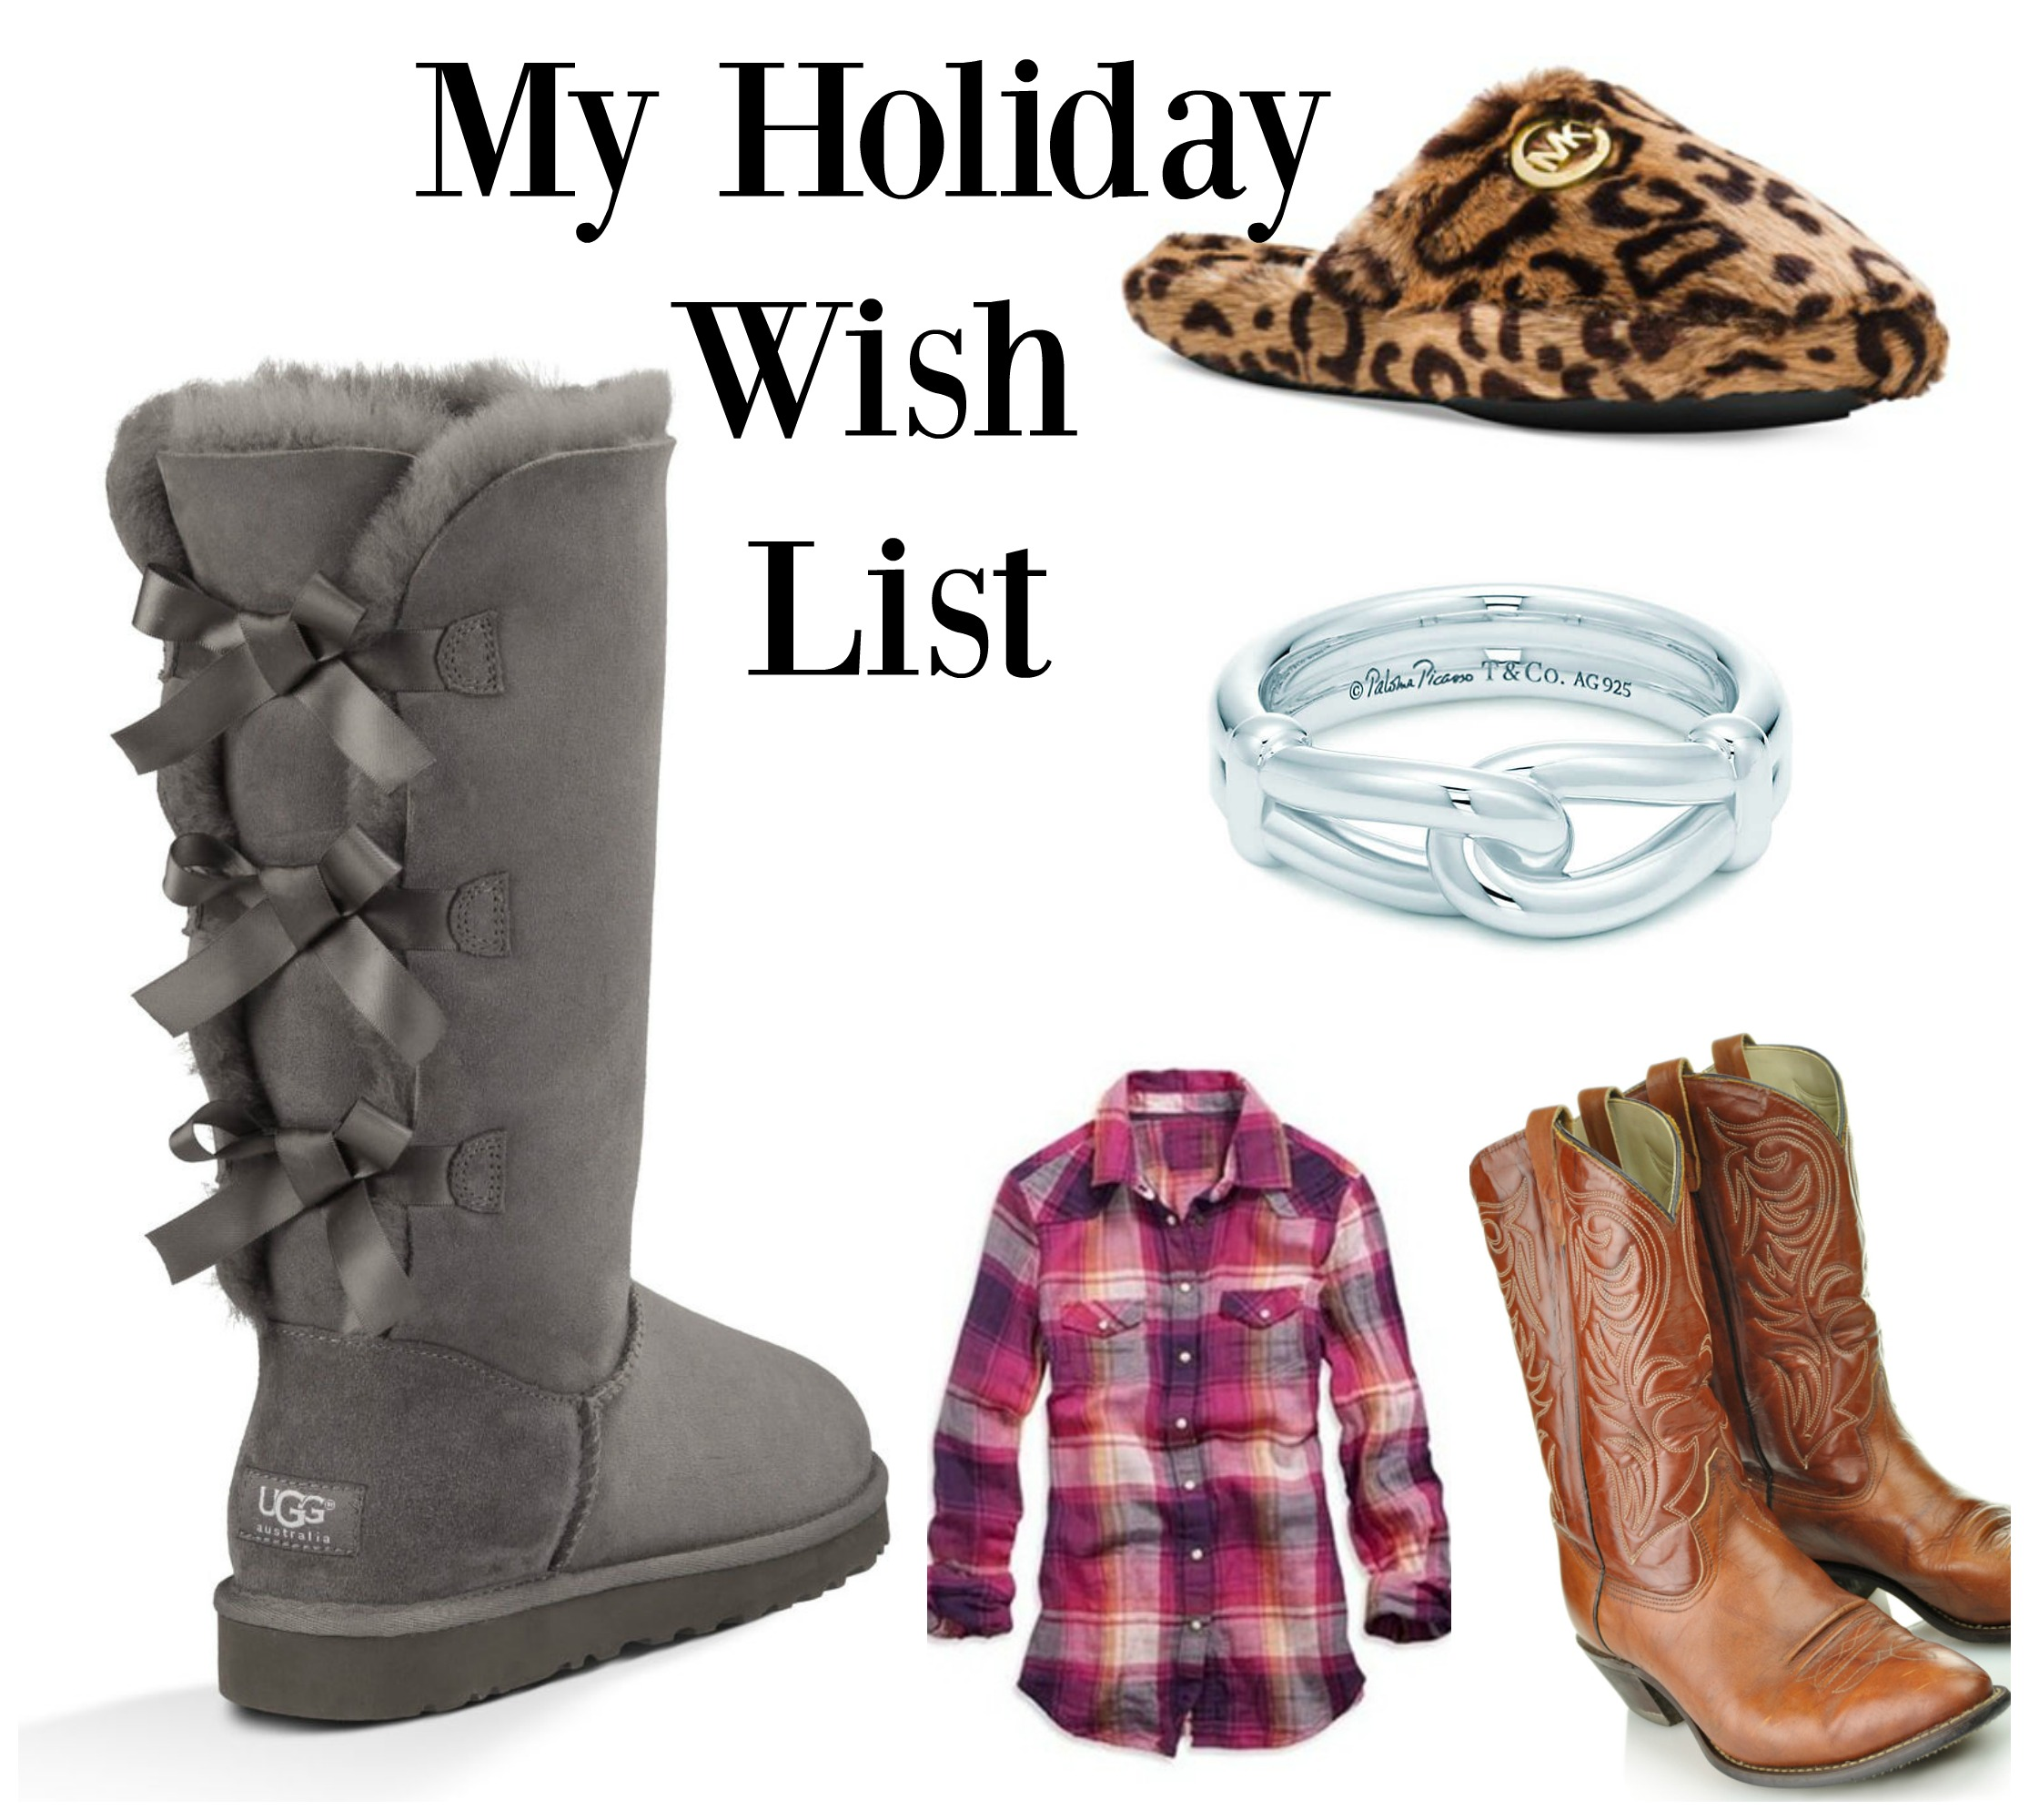 My Holiday Wish List